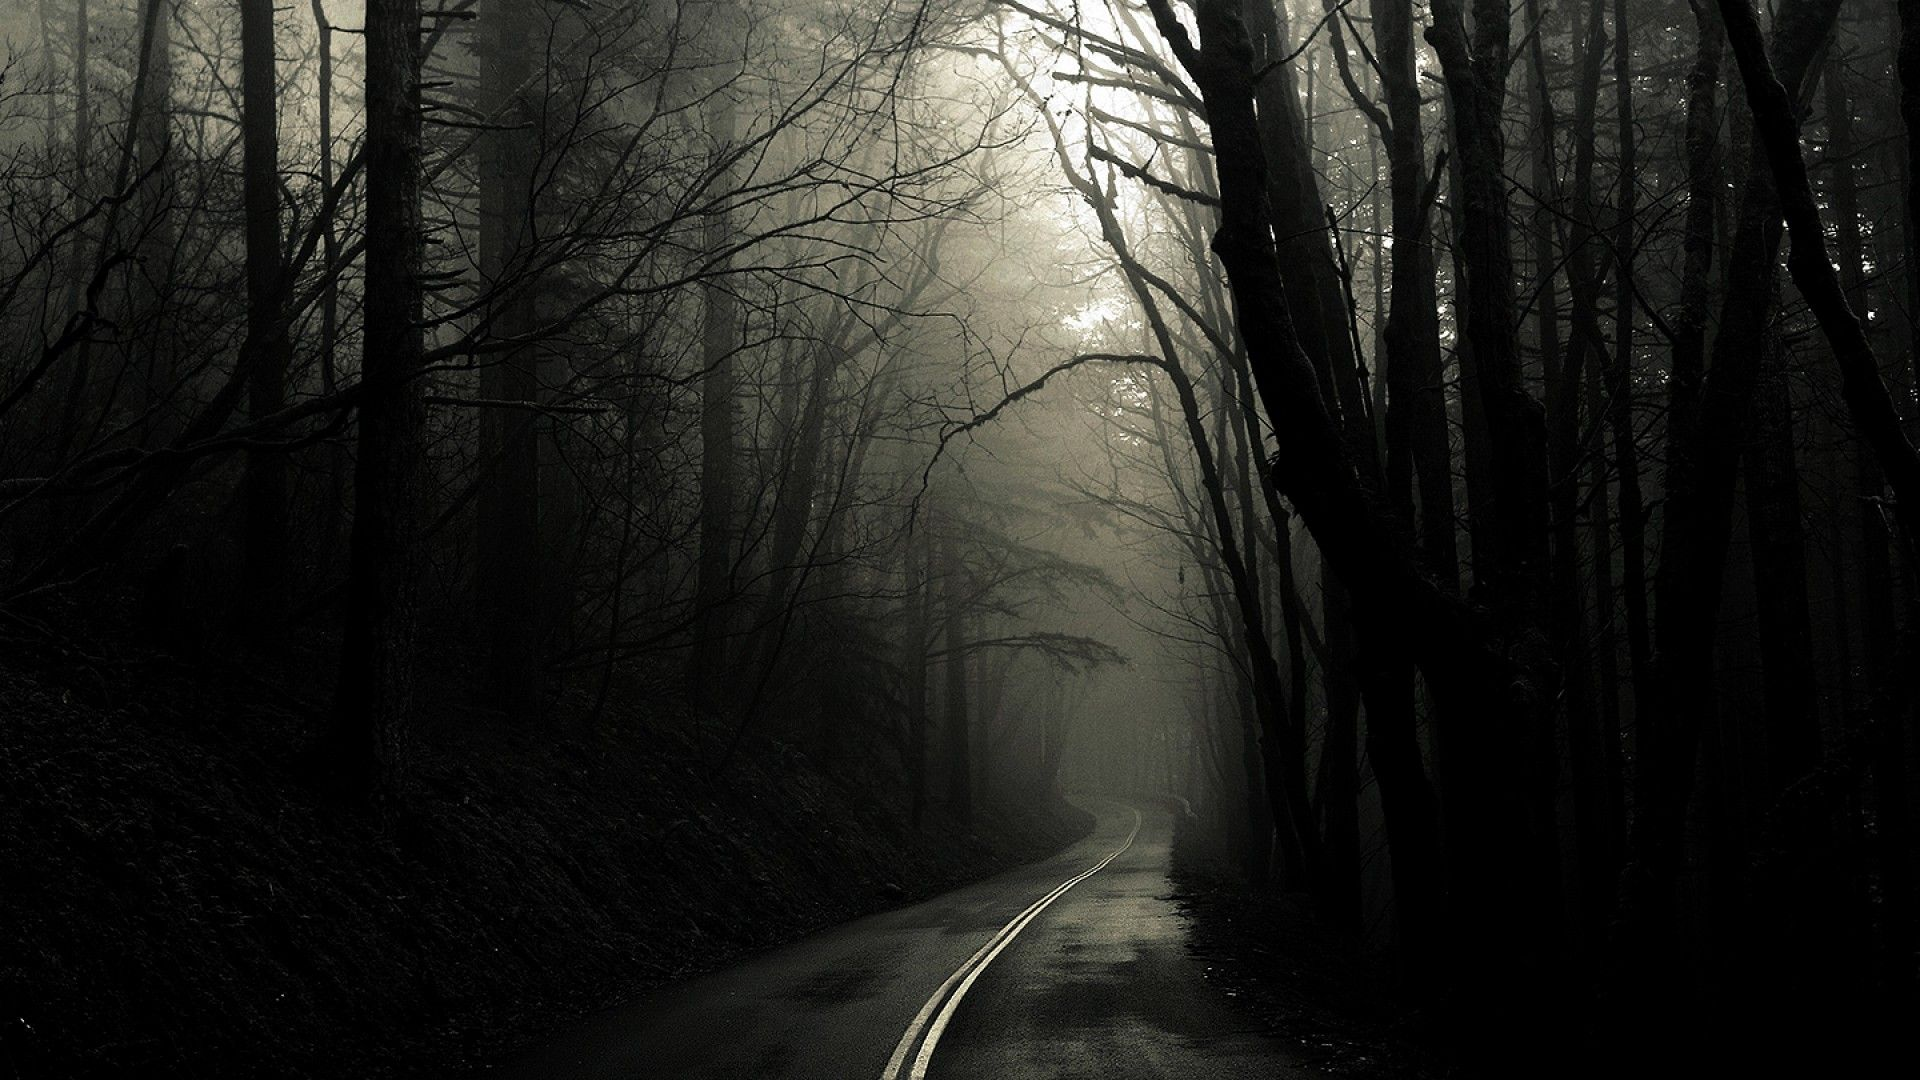 Love This Wallpaper Hd Dark Road Wallpaper Full Hd 1920x1080 Or 1920x1200 Background Image Papel De Parede Escuro Florestas Negras Floresta Escura